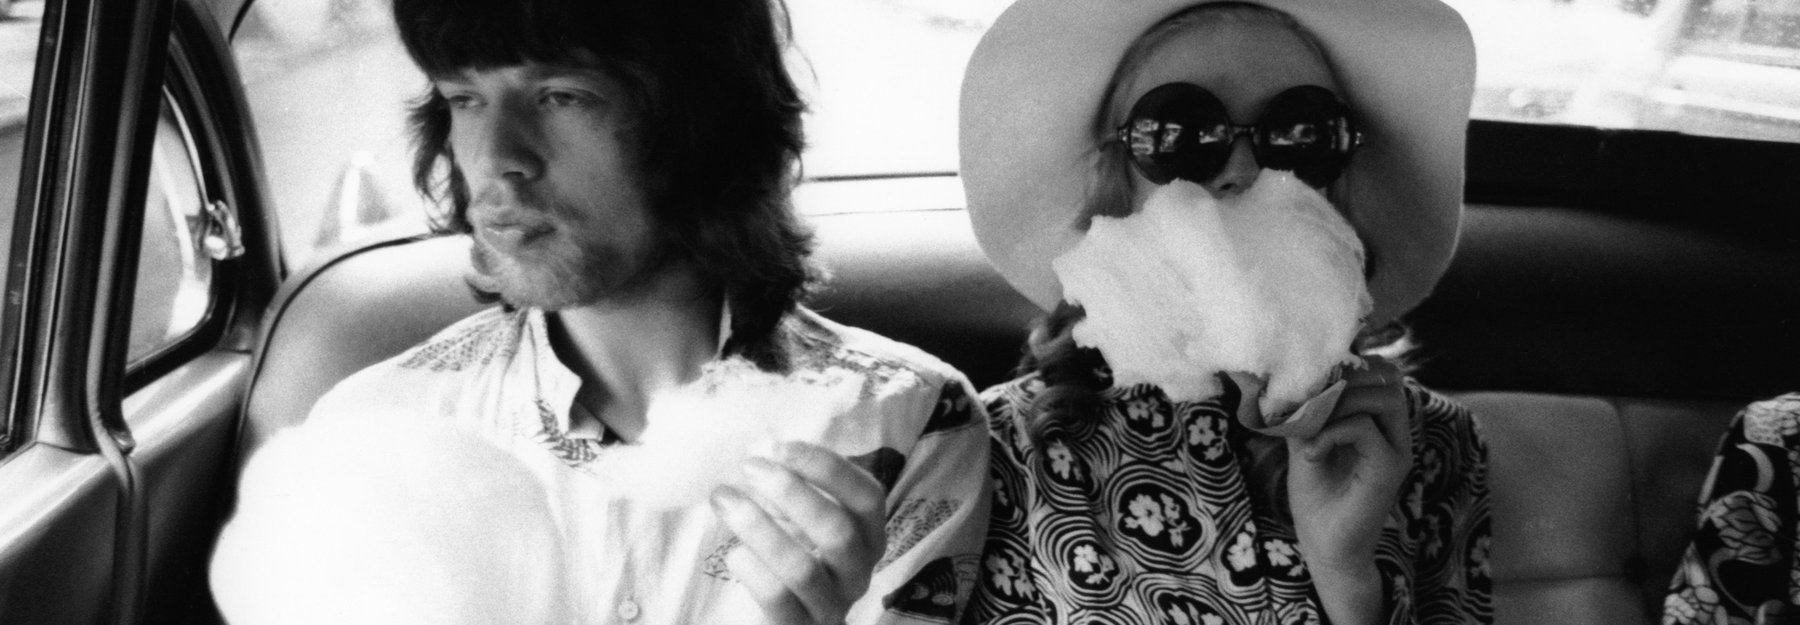 Style Like Jagger Make Mick Your Fashion Icon The Iconic Edition